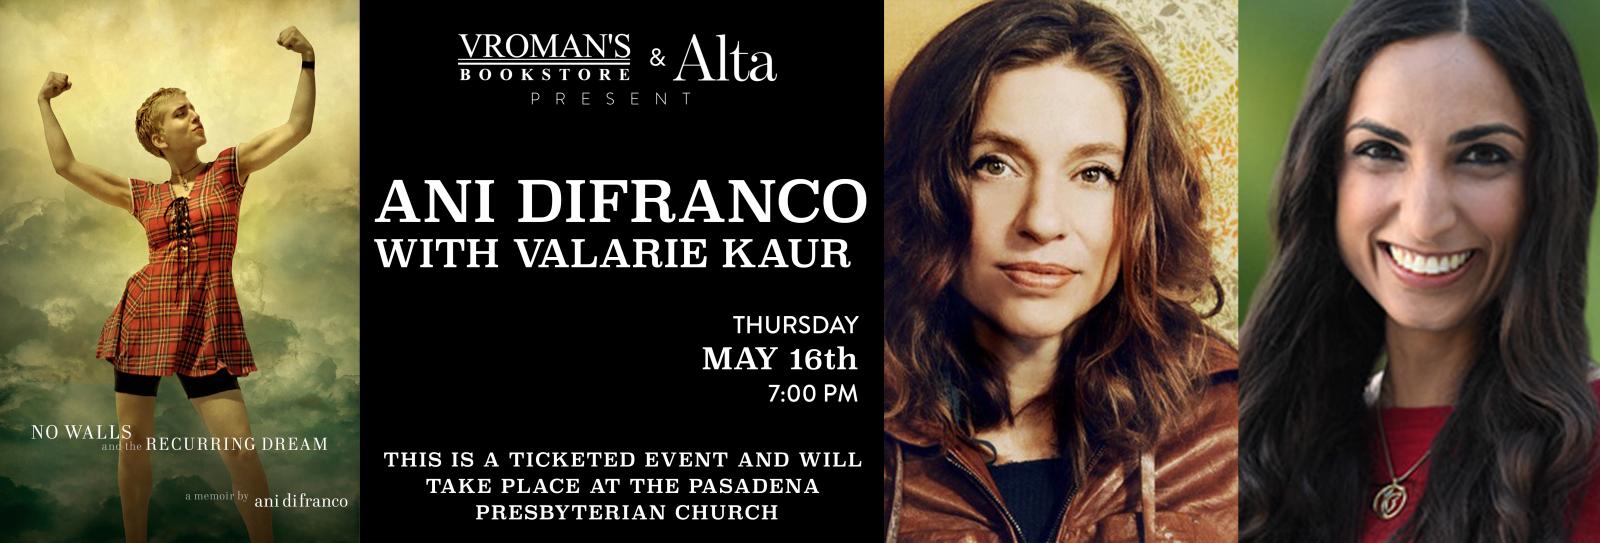 Ani DiFranco book signing Thursday May 16th at 7pm